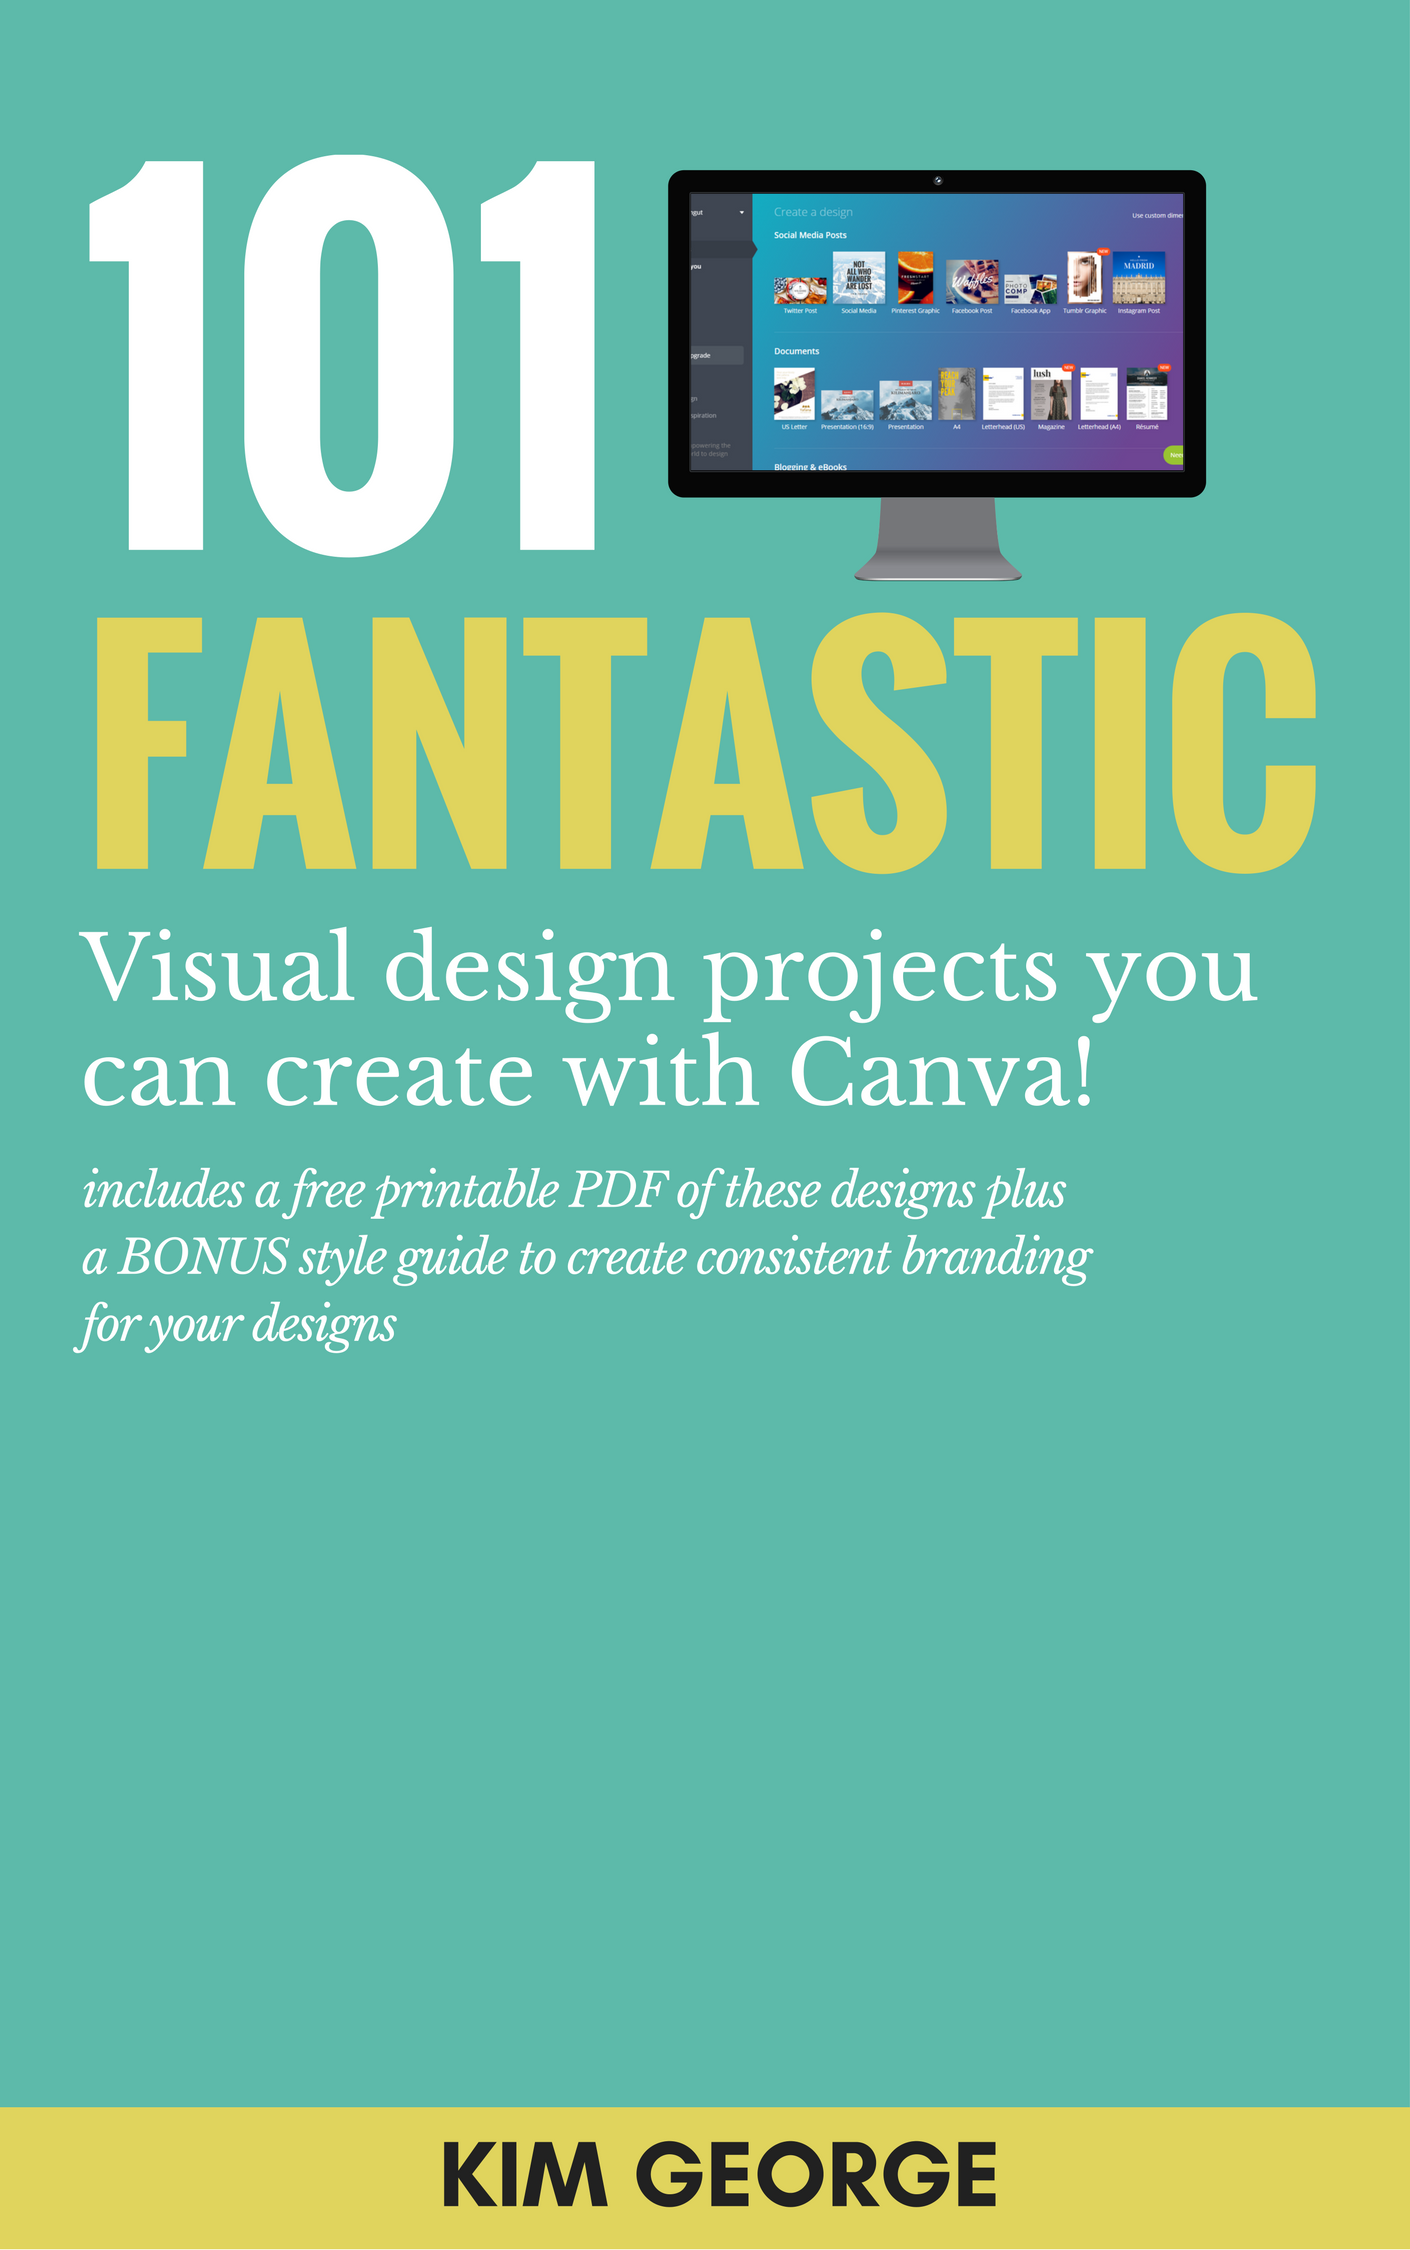 How to use canva 101 amazing designs you can create includes where would you like me to send your pdf and free canva style guide to malvernweather Gallery